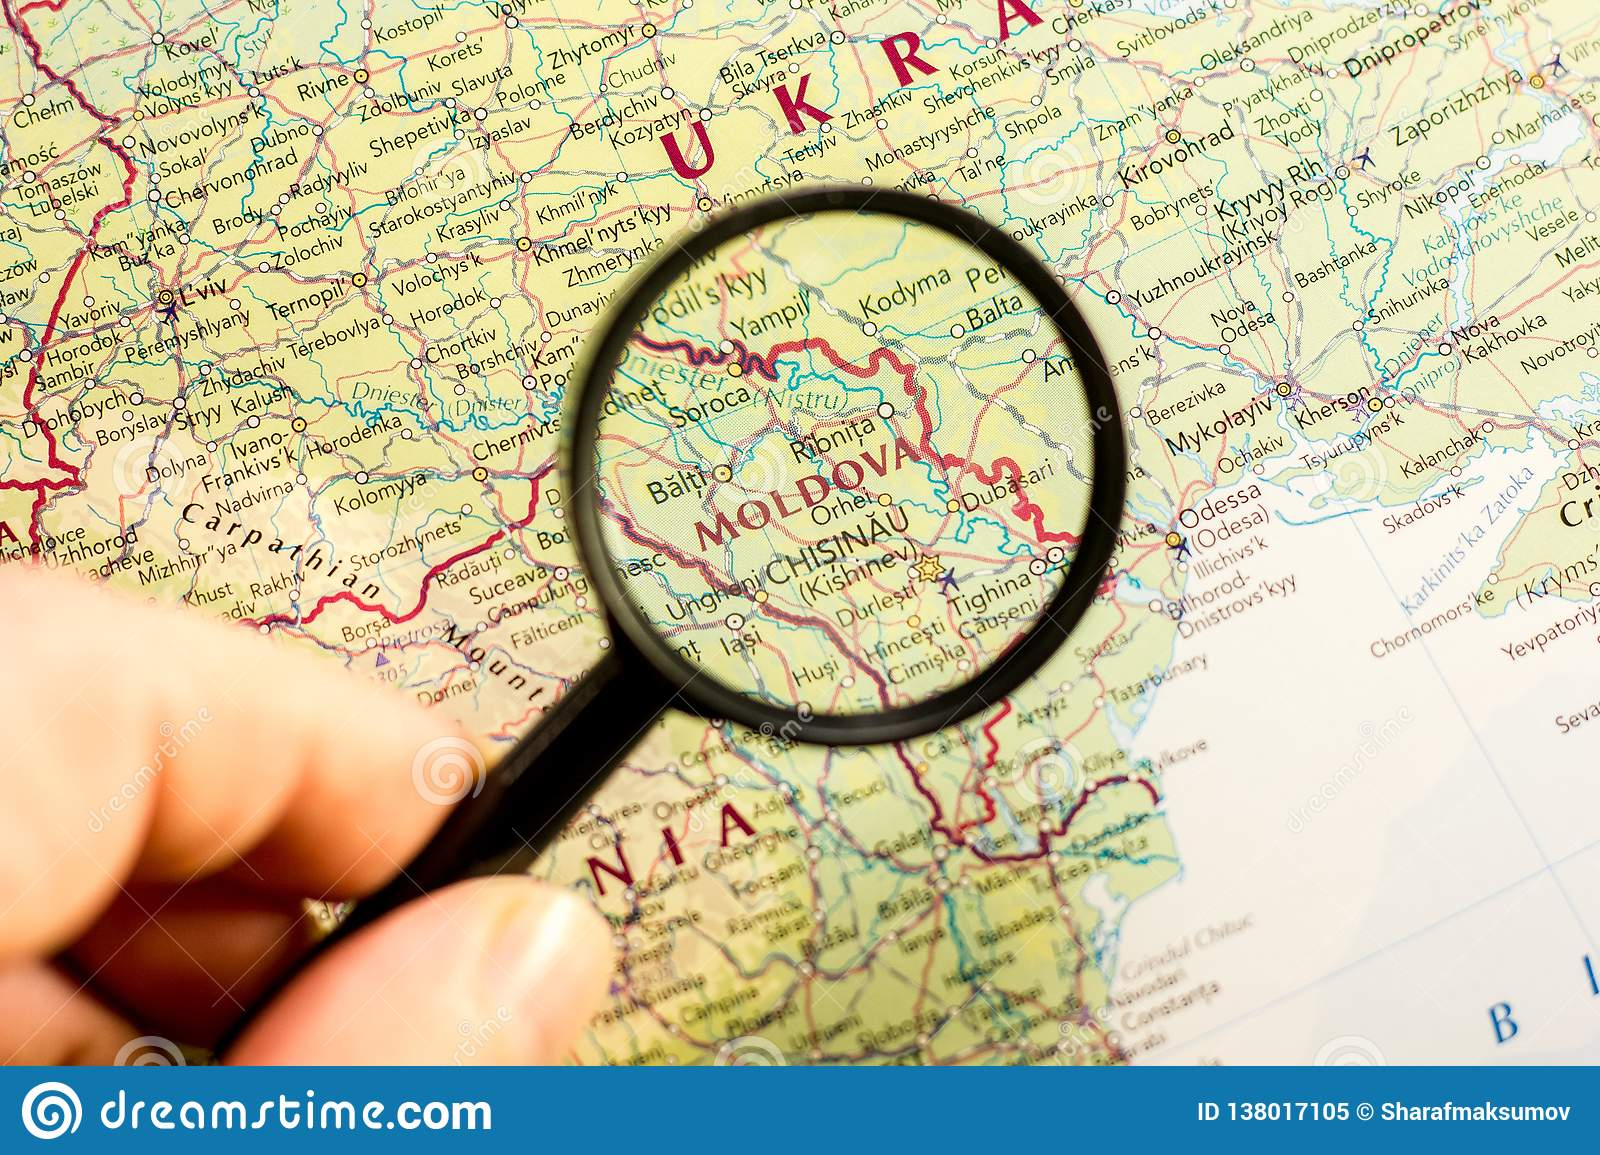 Moldova On The Map Of The World Stock Image - Image of